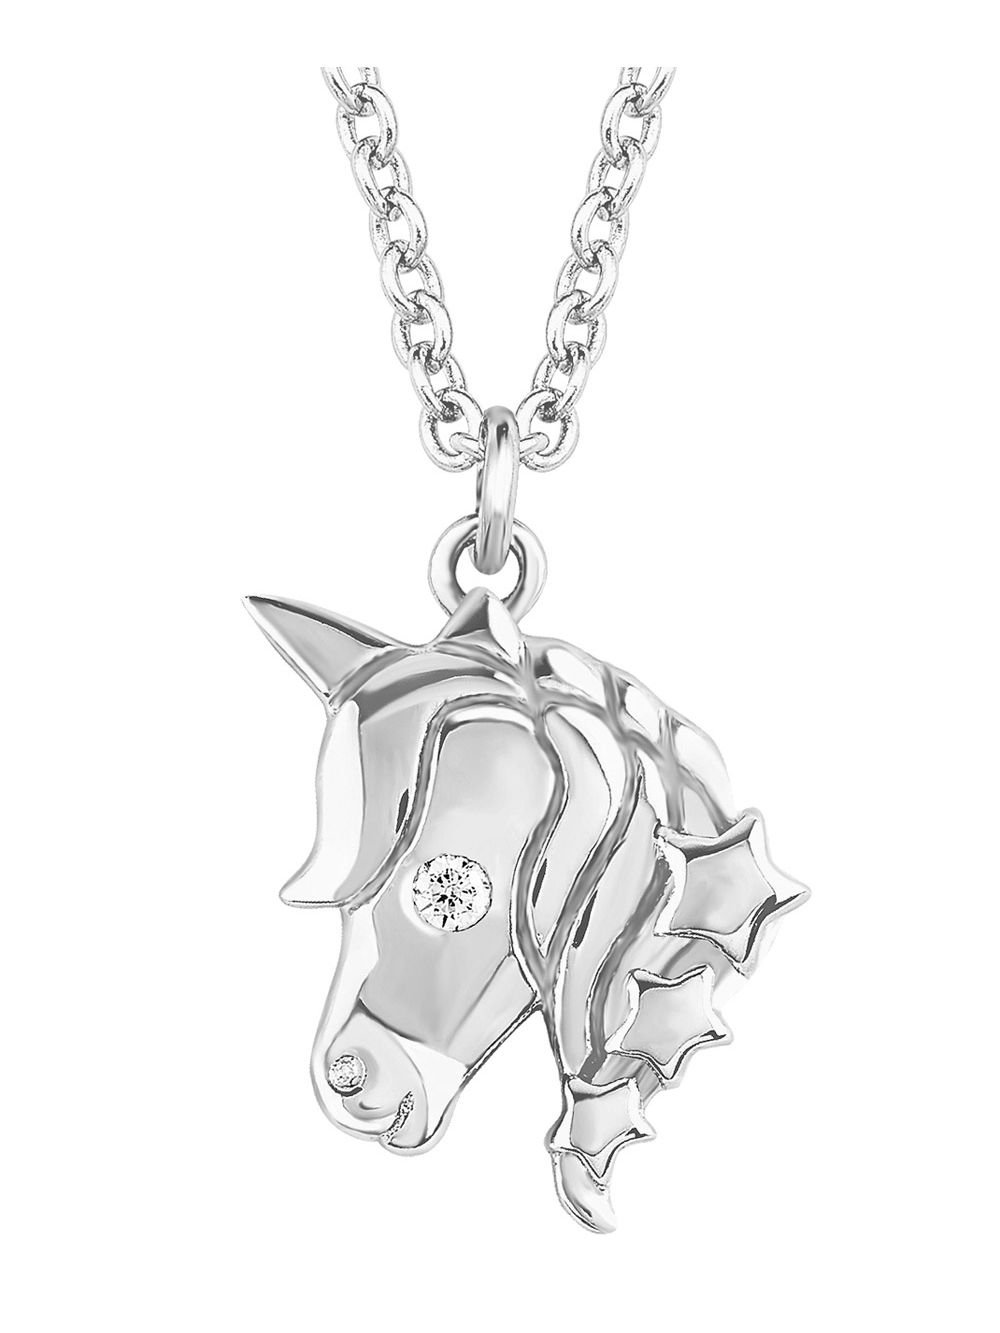 pendant unicorn cave fire tonicunicornpendant ace products the tonic amy likes amylikesfireace